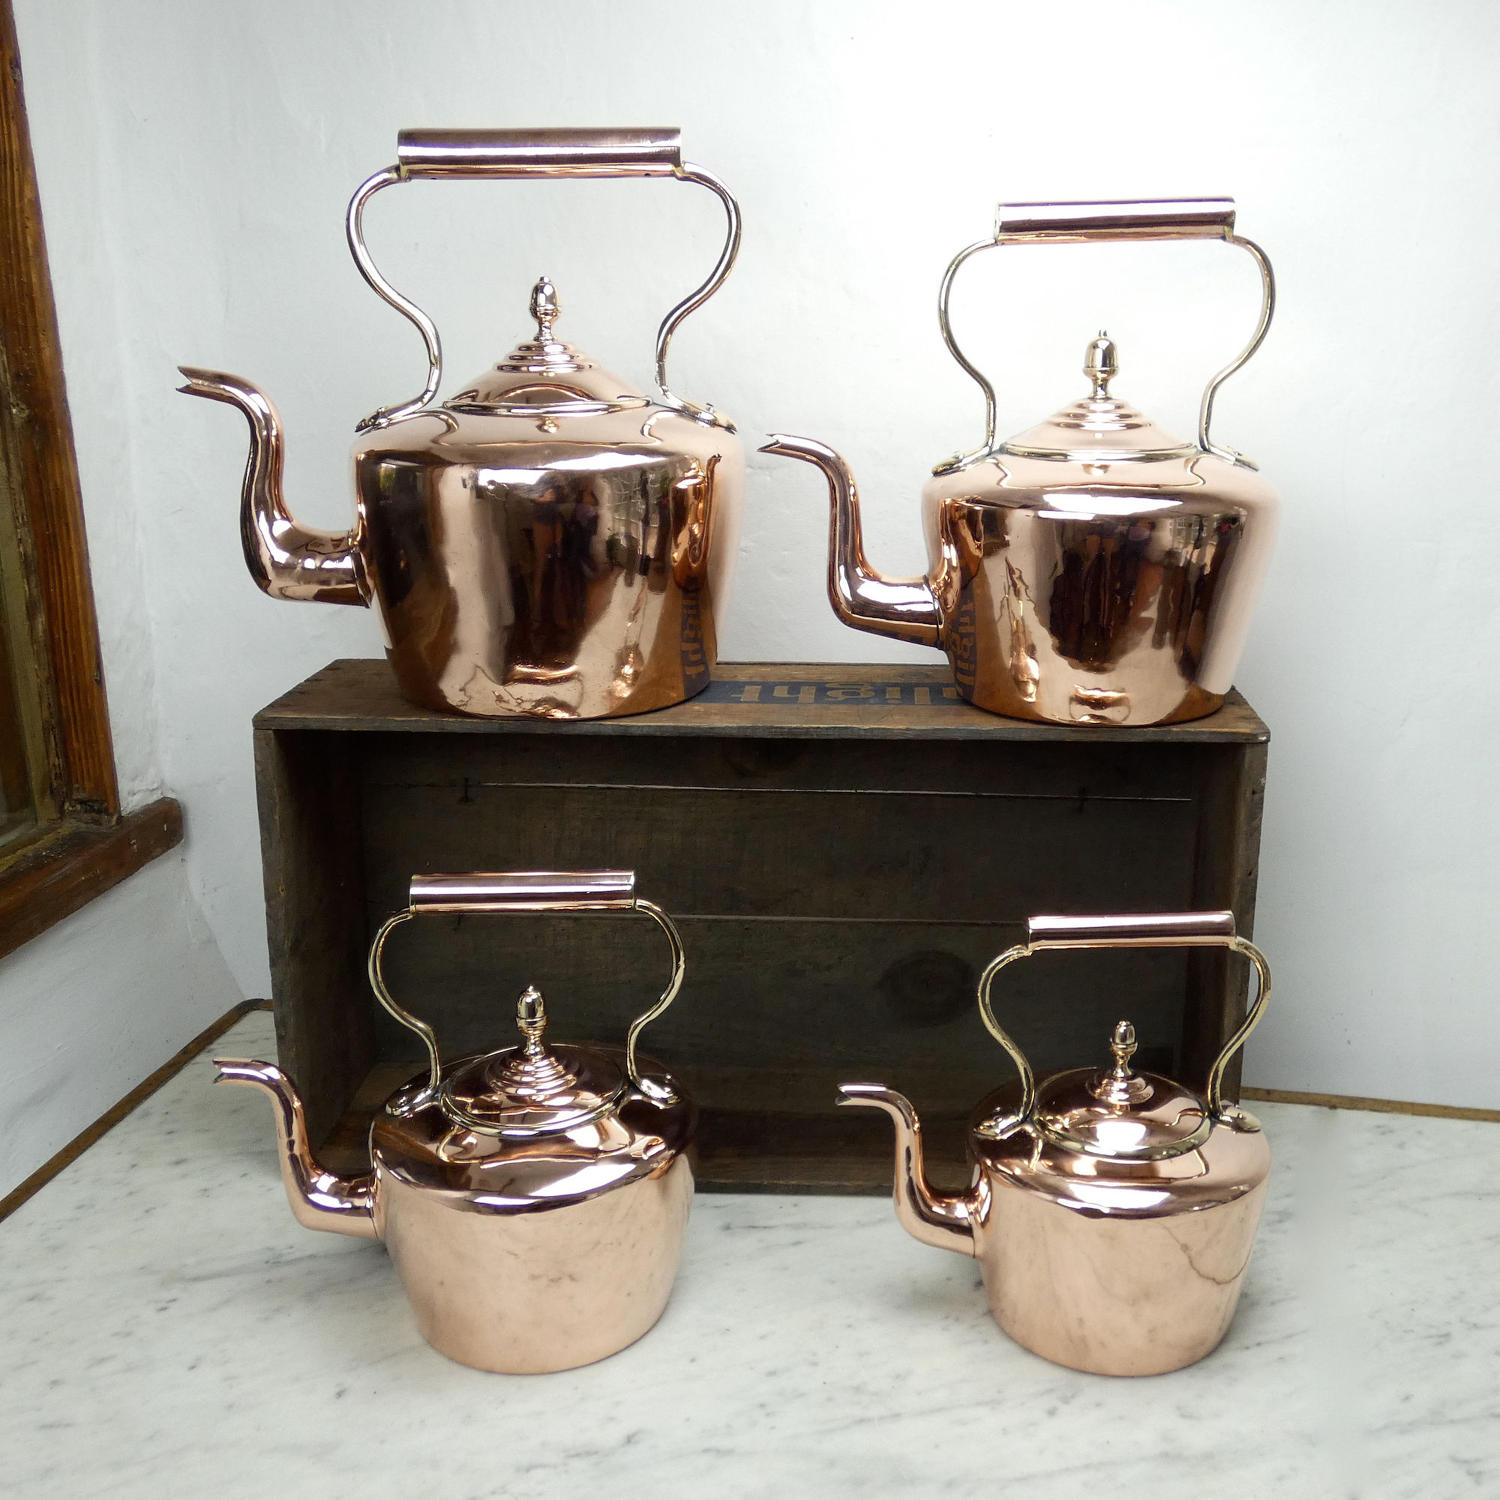 Graduated Set of Kettles